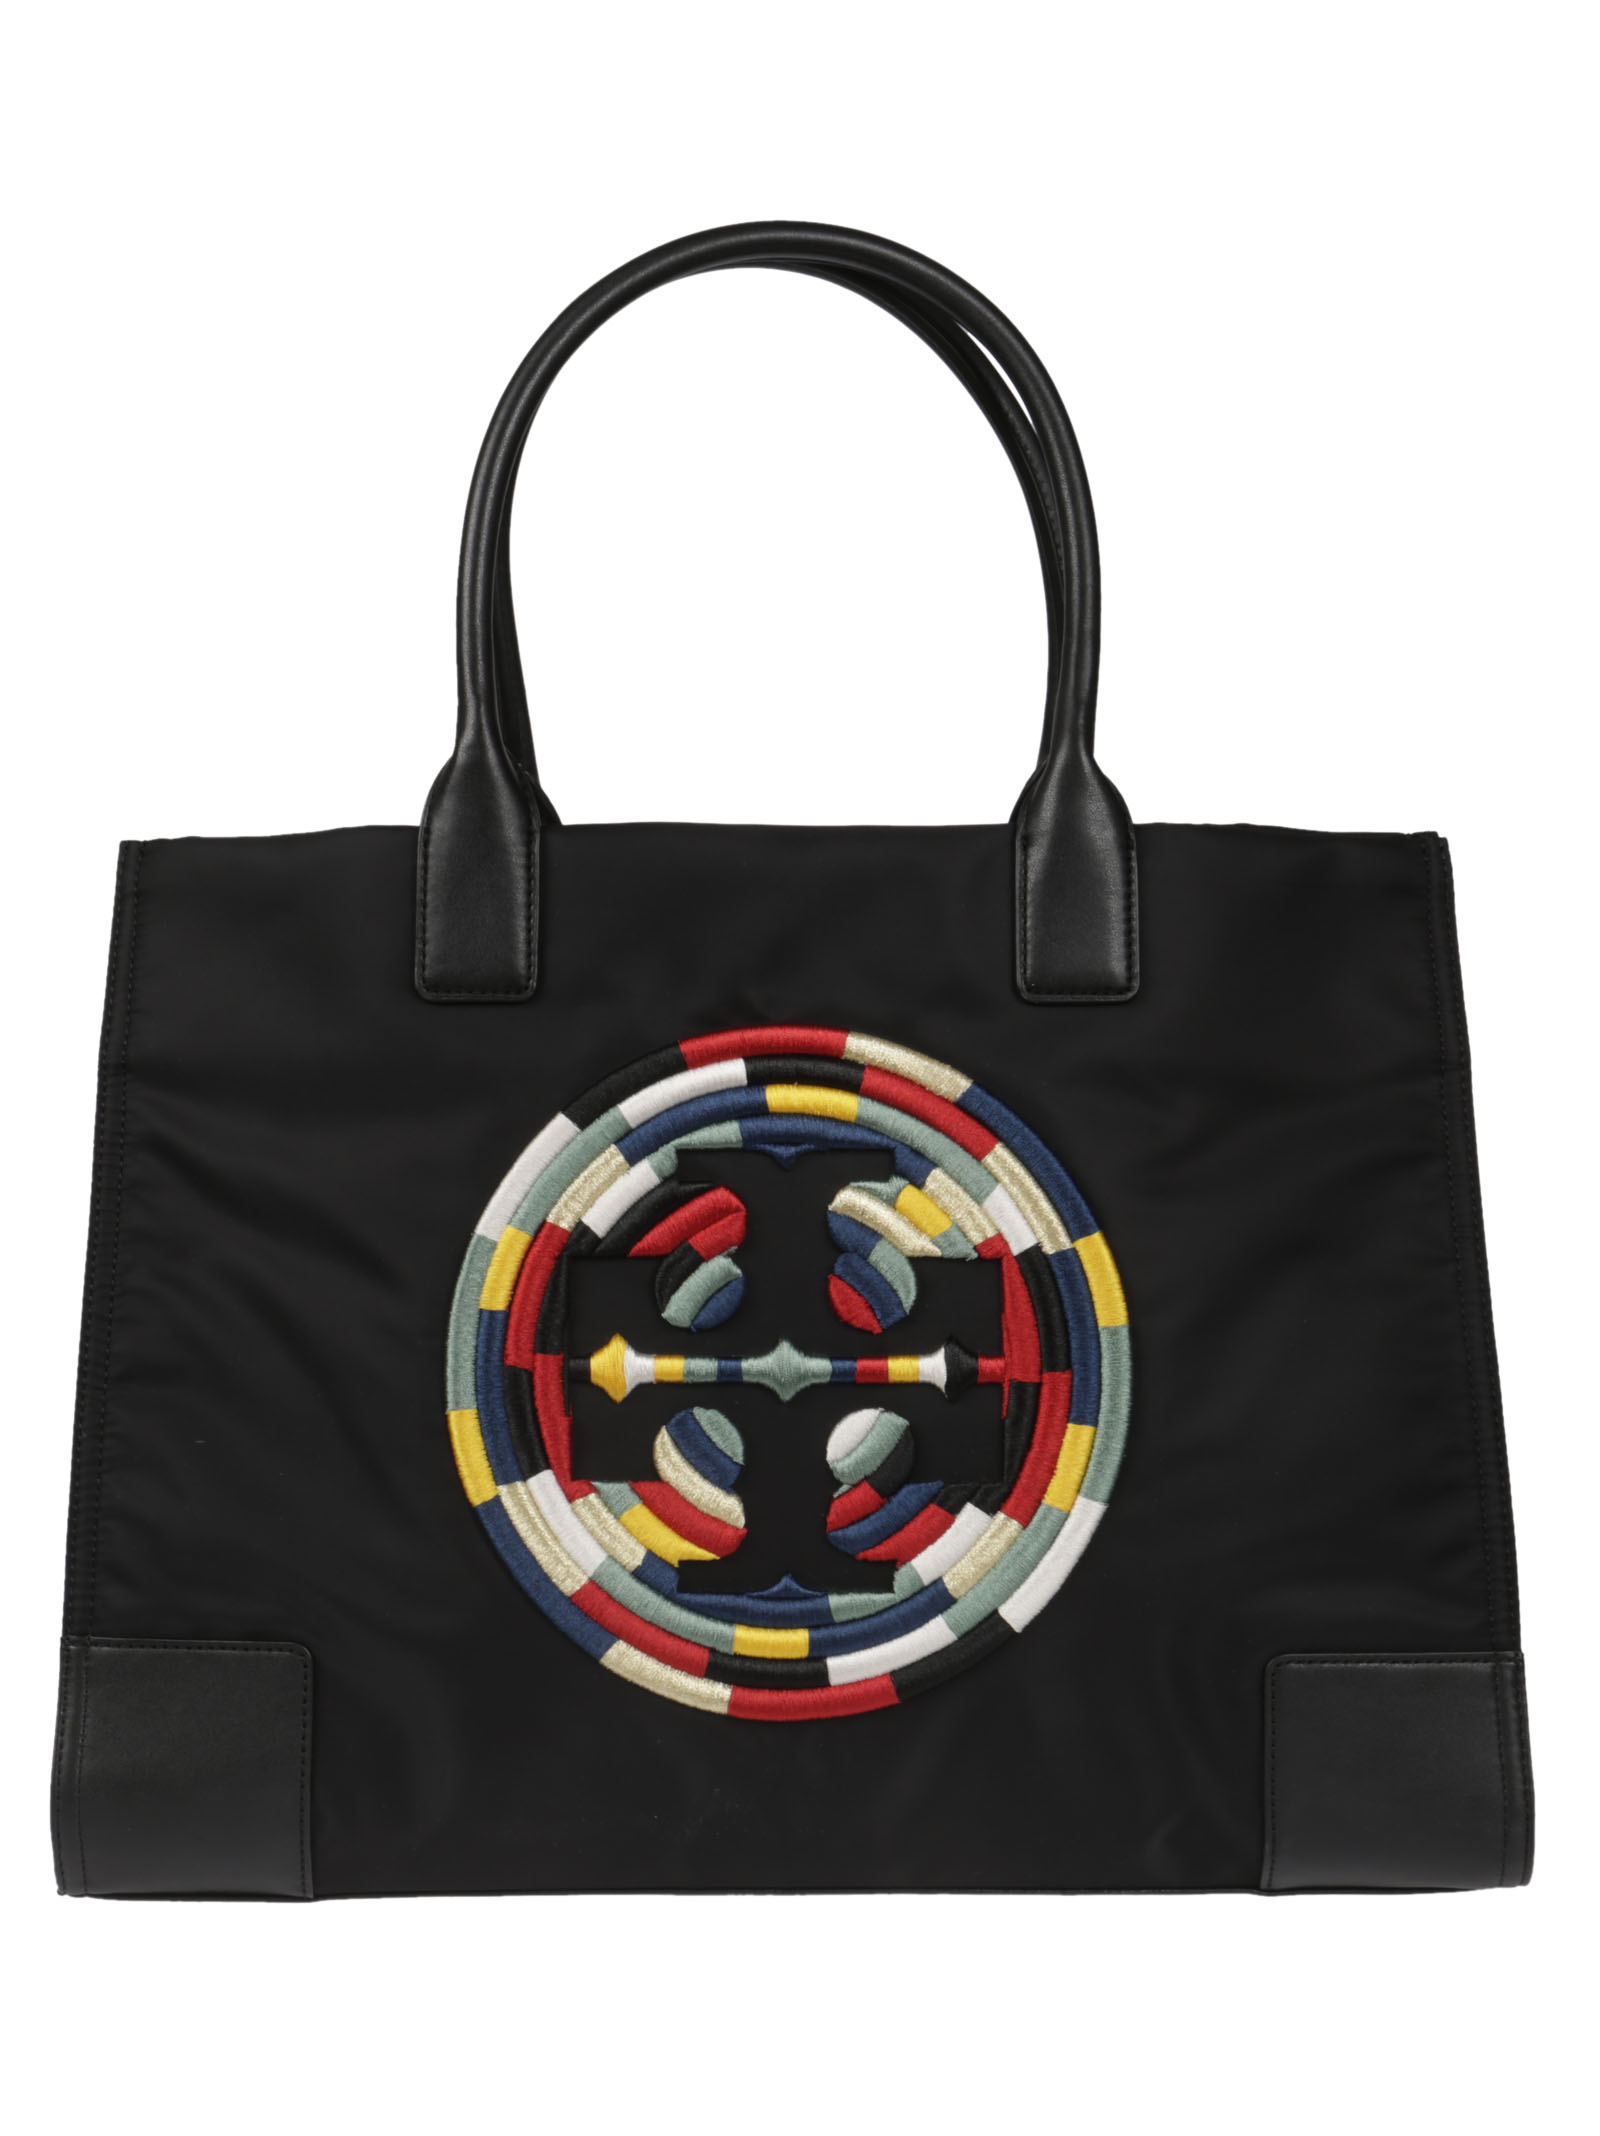 Tory Burch ROPE ELLA bag